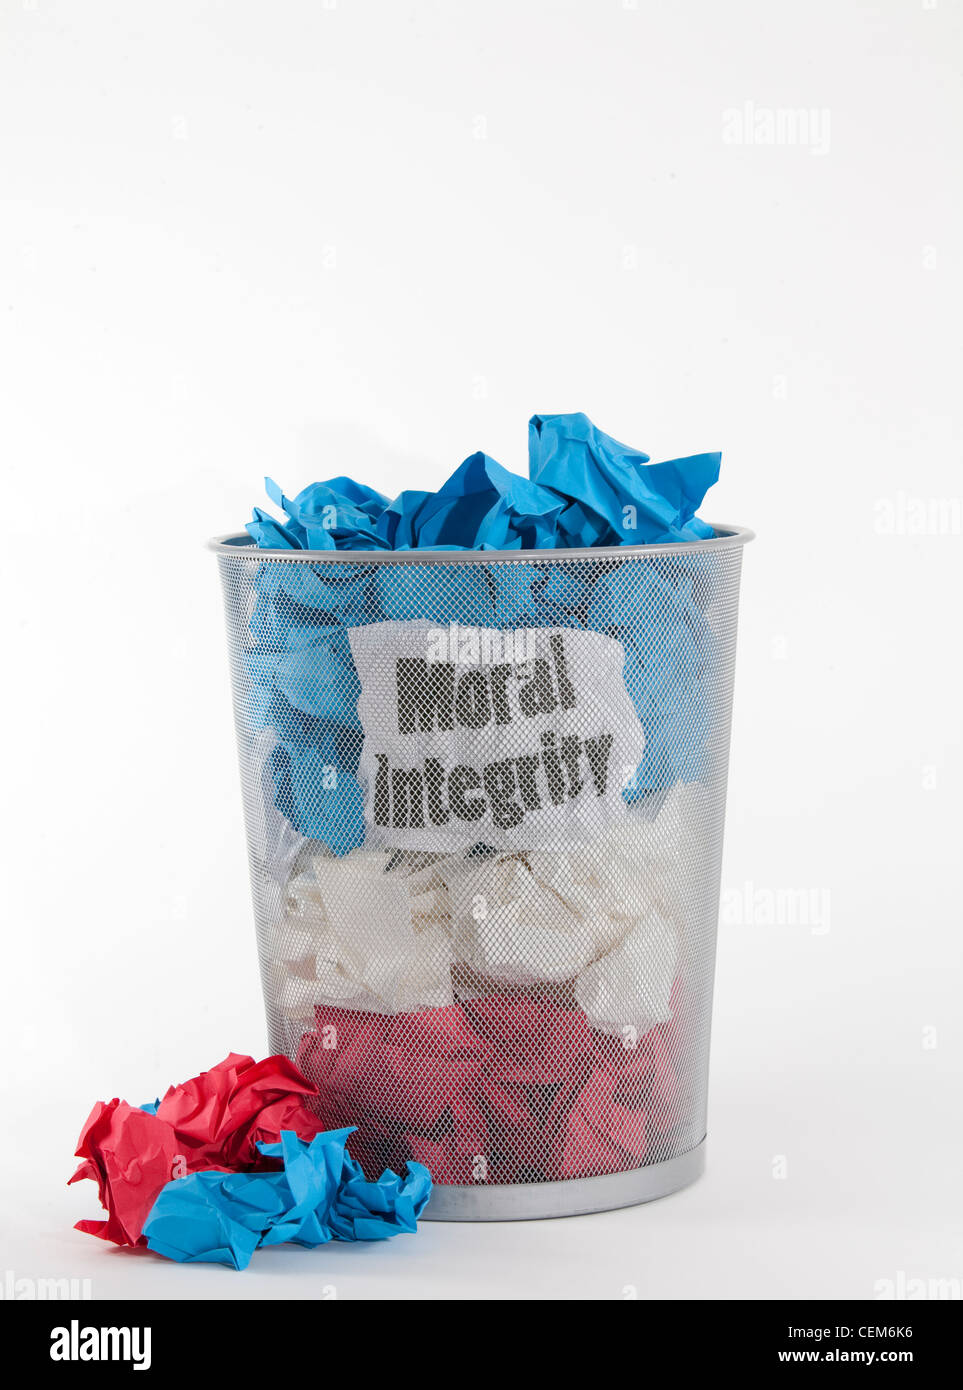 Moral integrity is a core value that shouldn't be wadded up and thrown away. - Stock Image